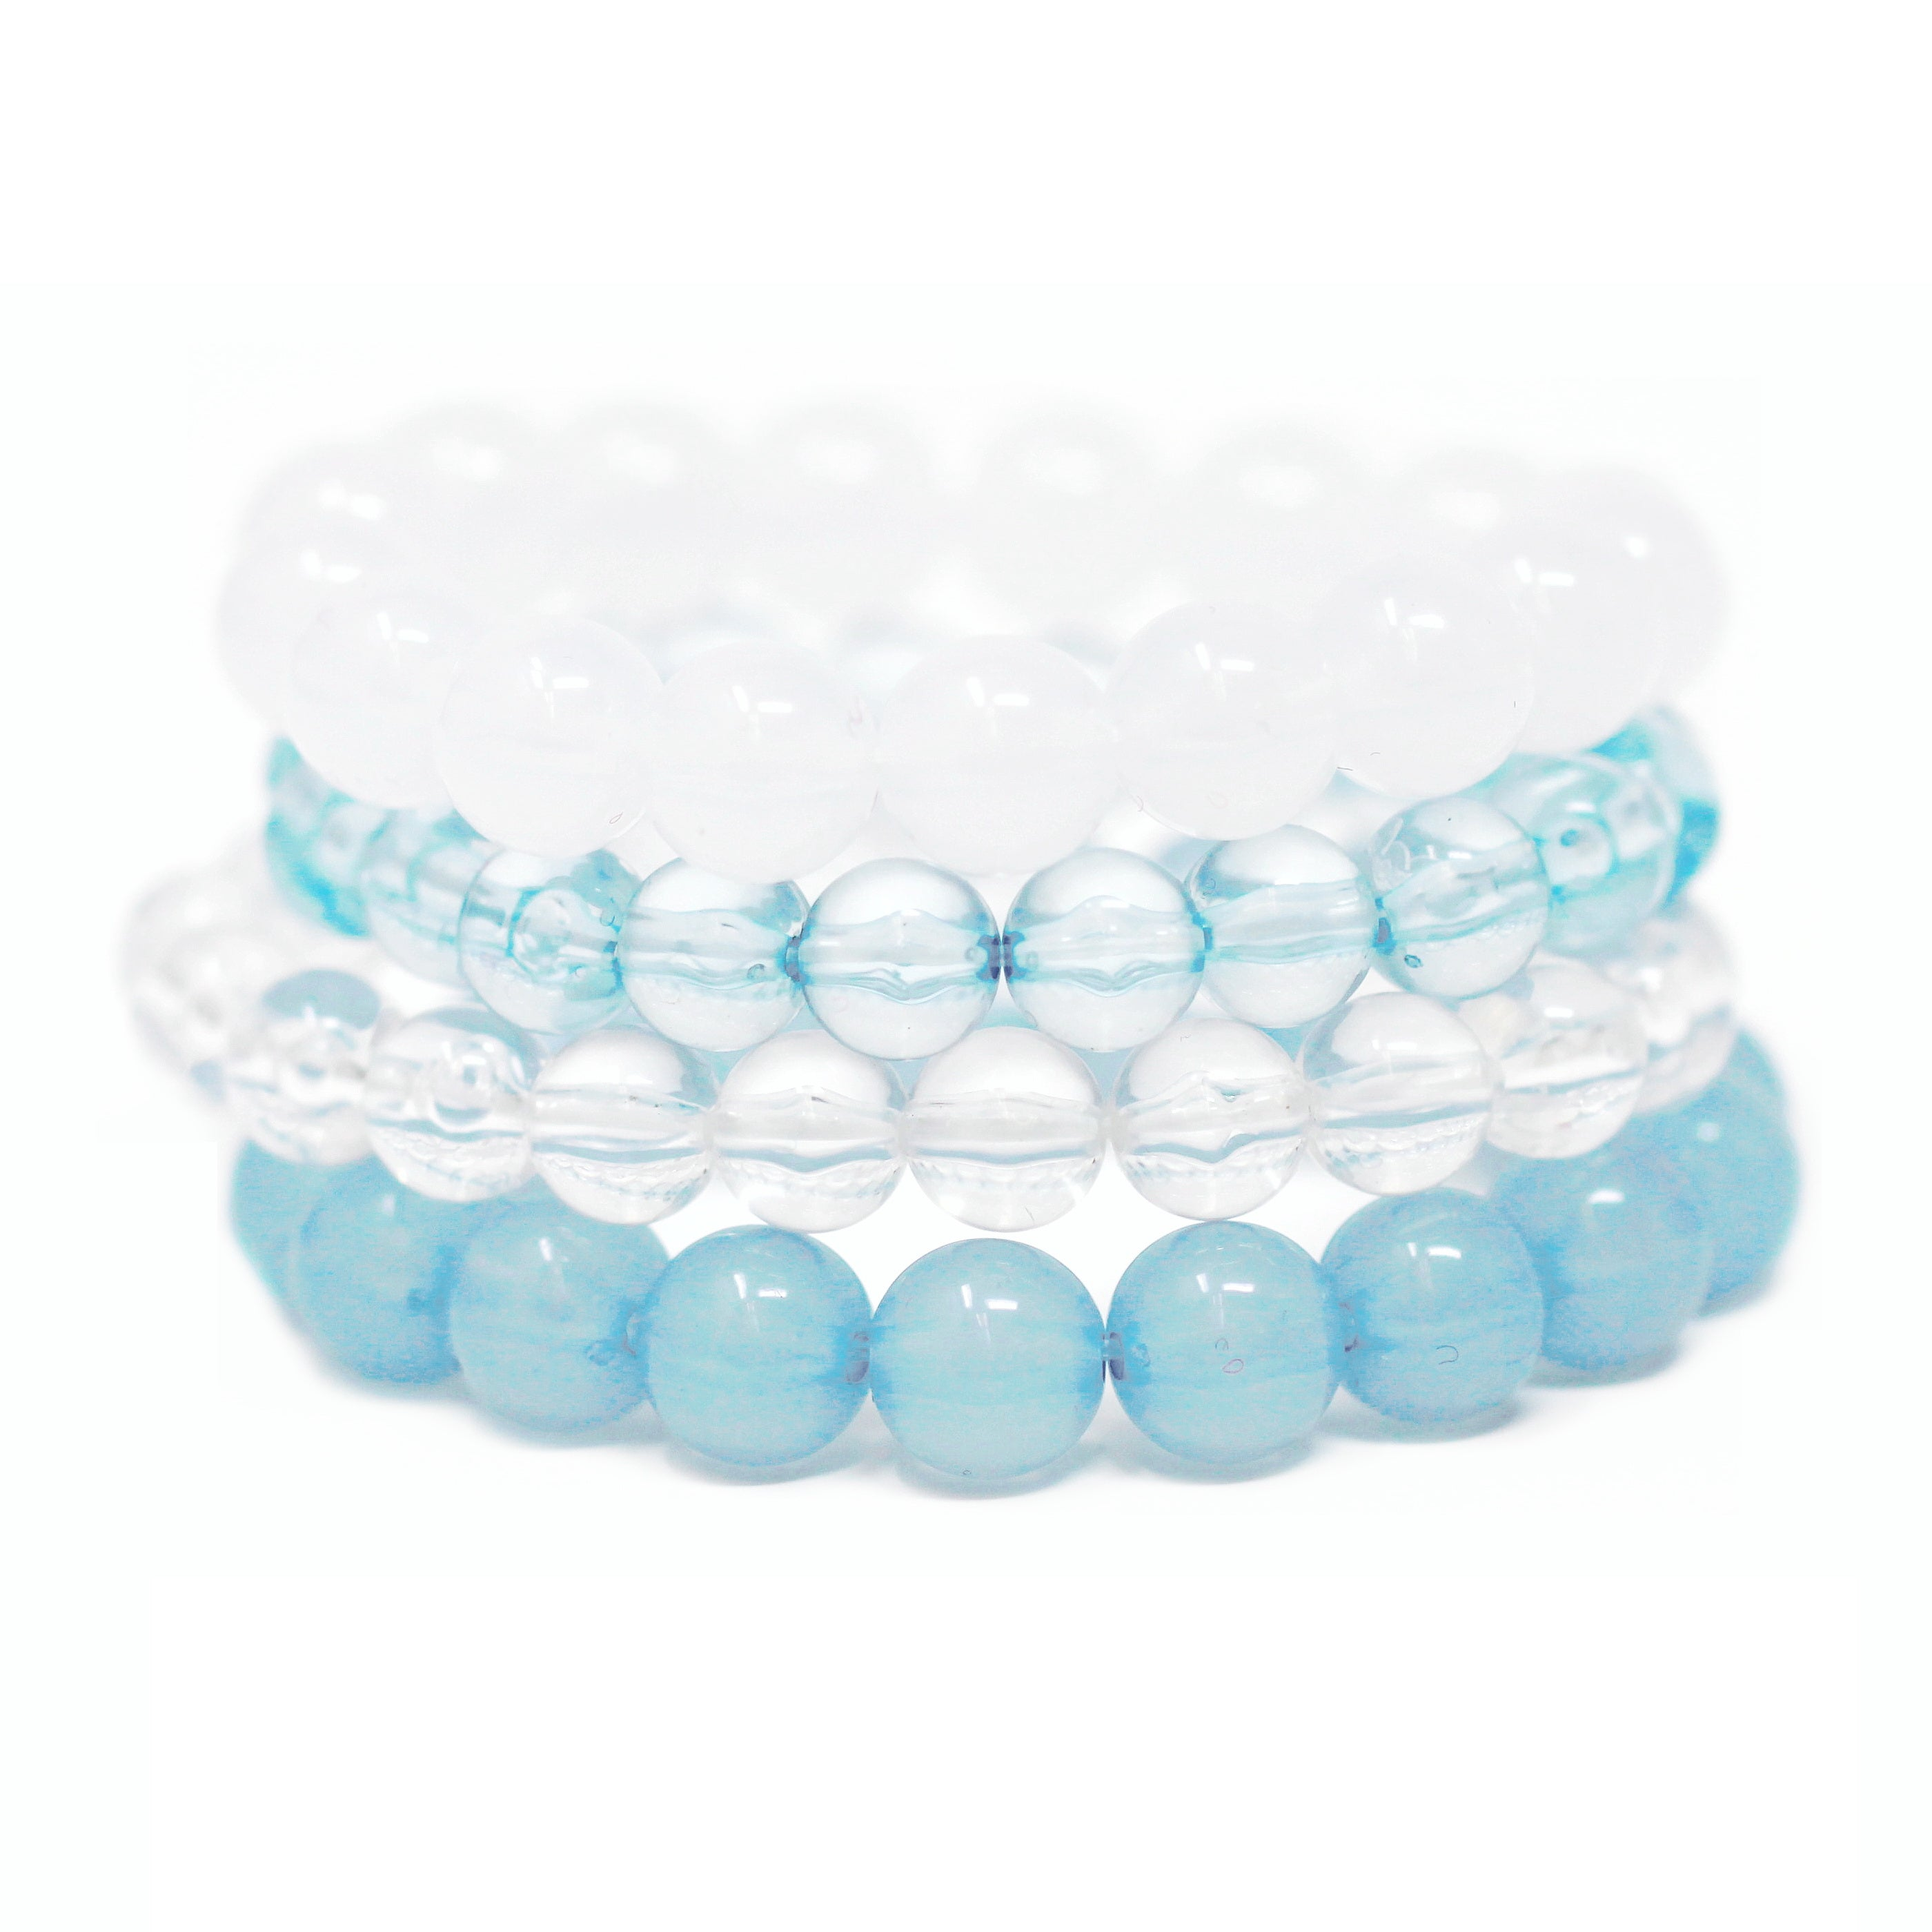 Bon Bon 4 Piece Stretch Bracelet Set